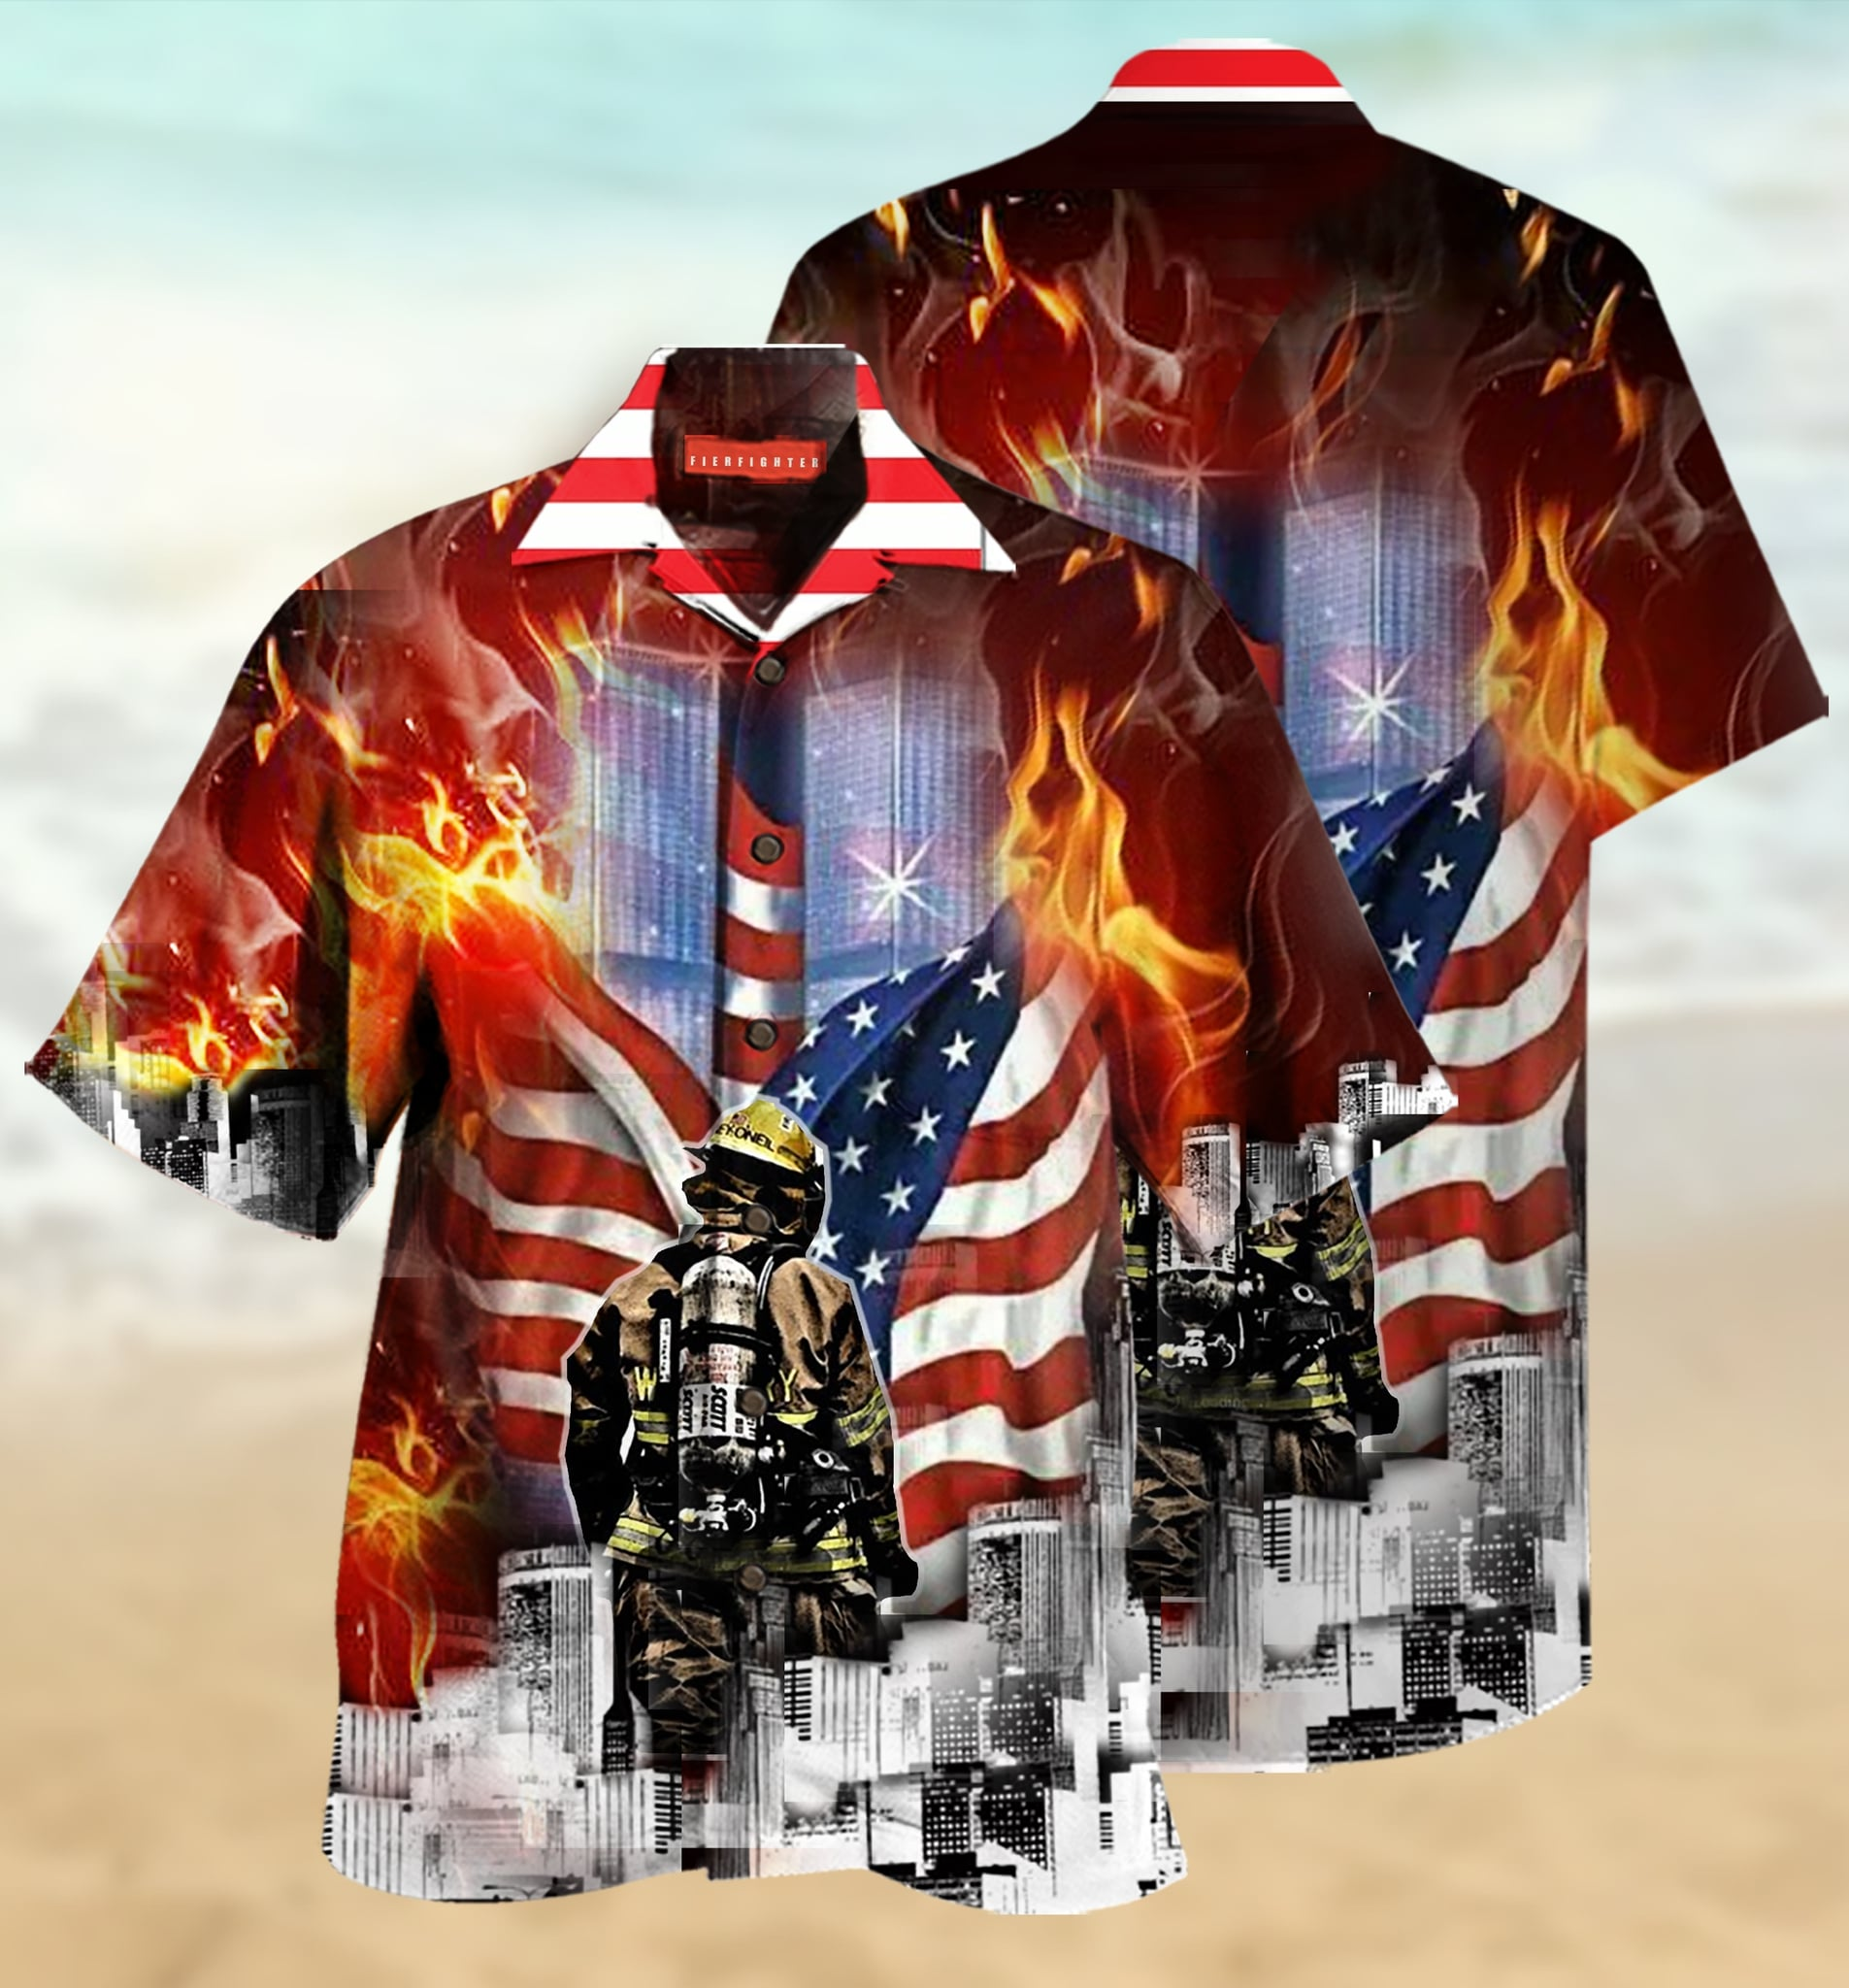 [special edition] always remember firefighter hawaiian shirt - Maria